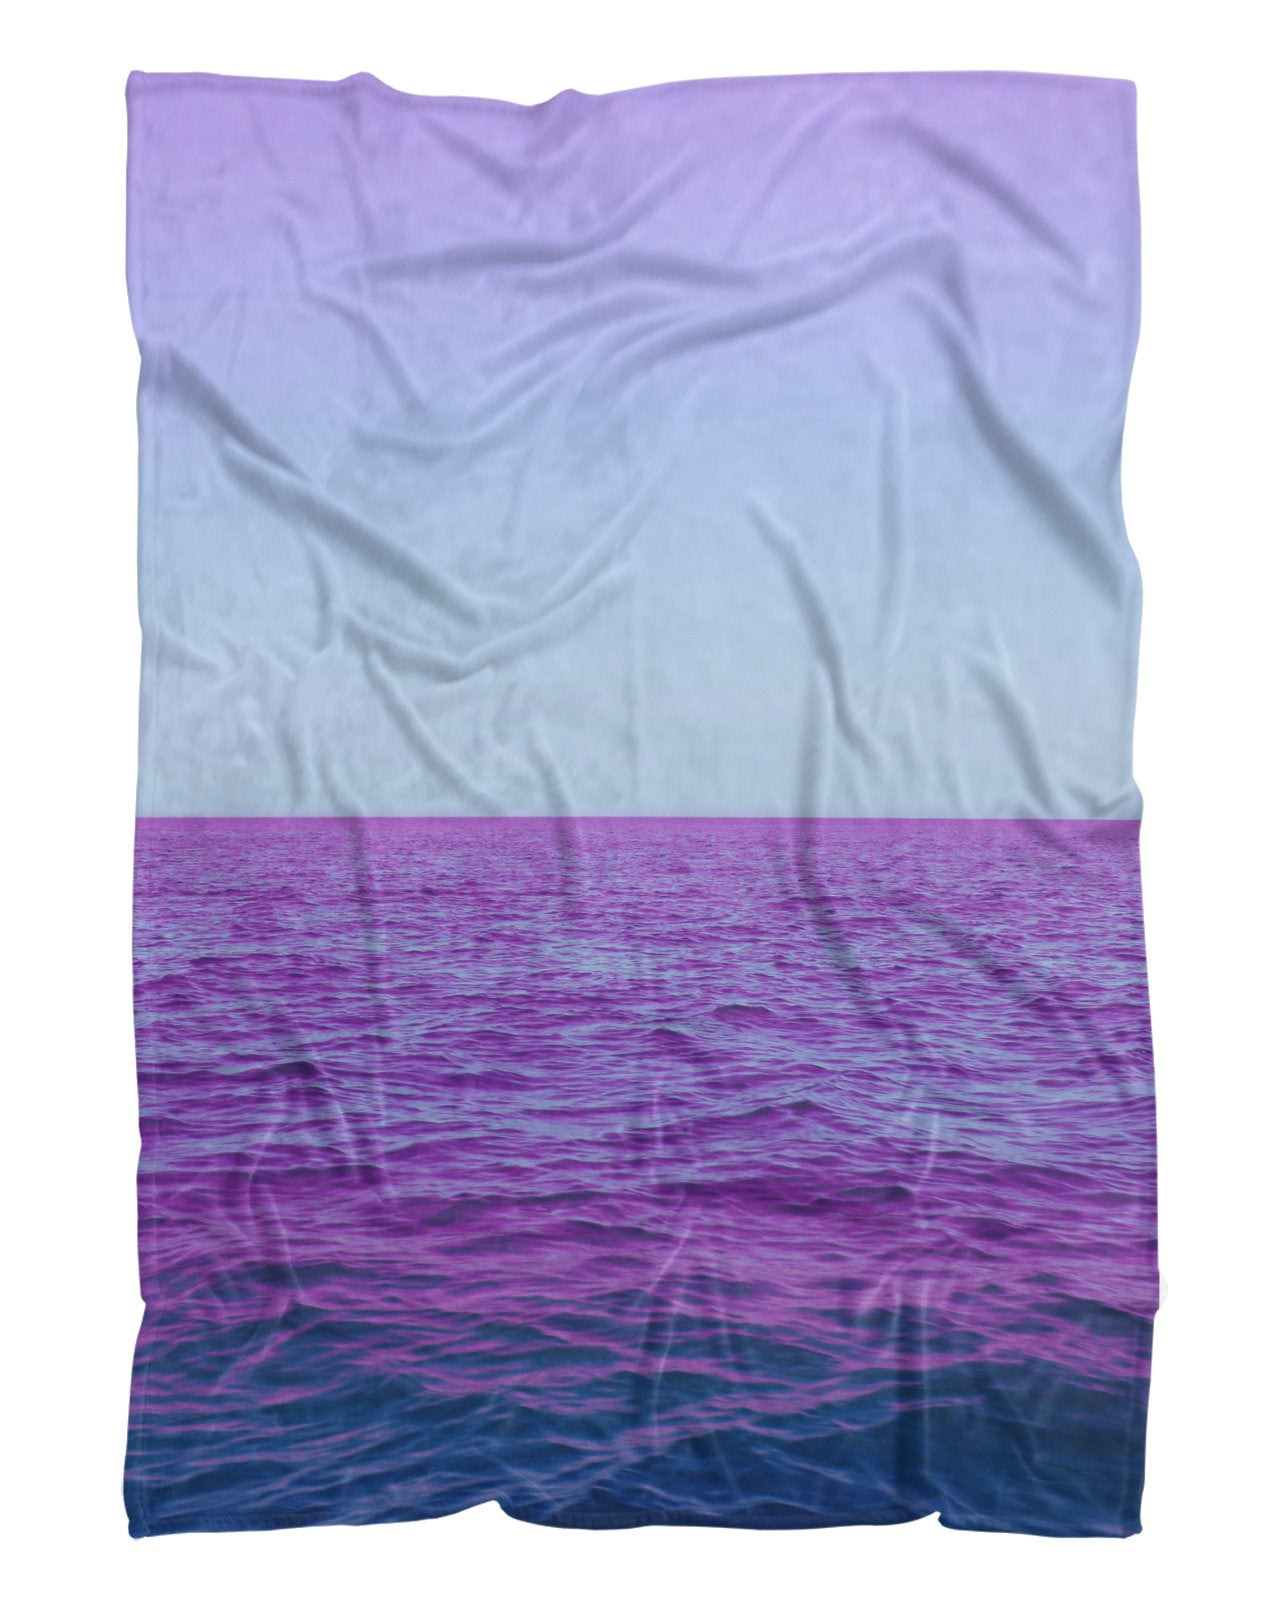 Purple Oceans Fluffy Micro Fleece Throw Blanket All Over Shirts Allovershirts Com